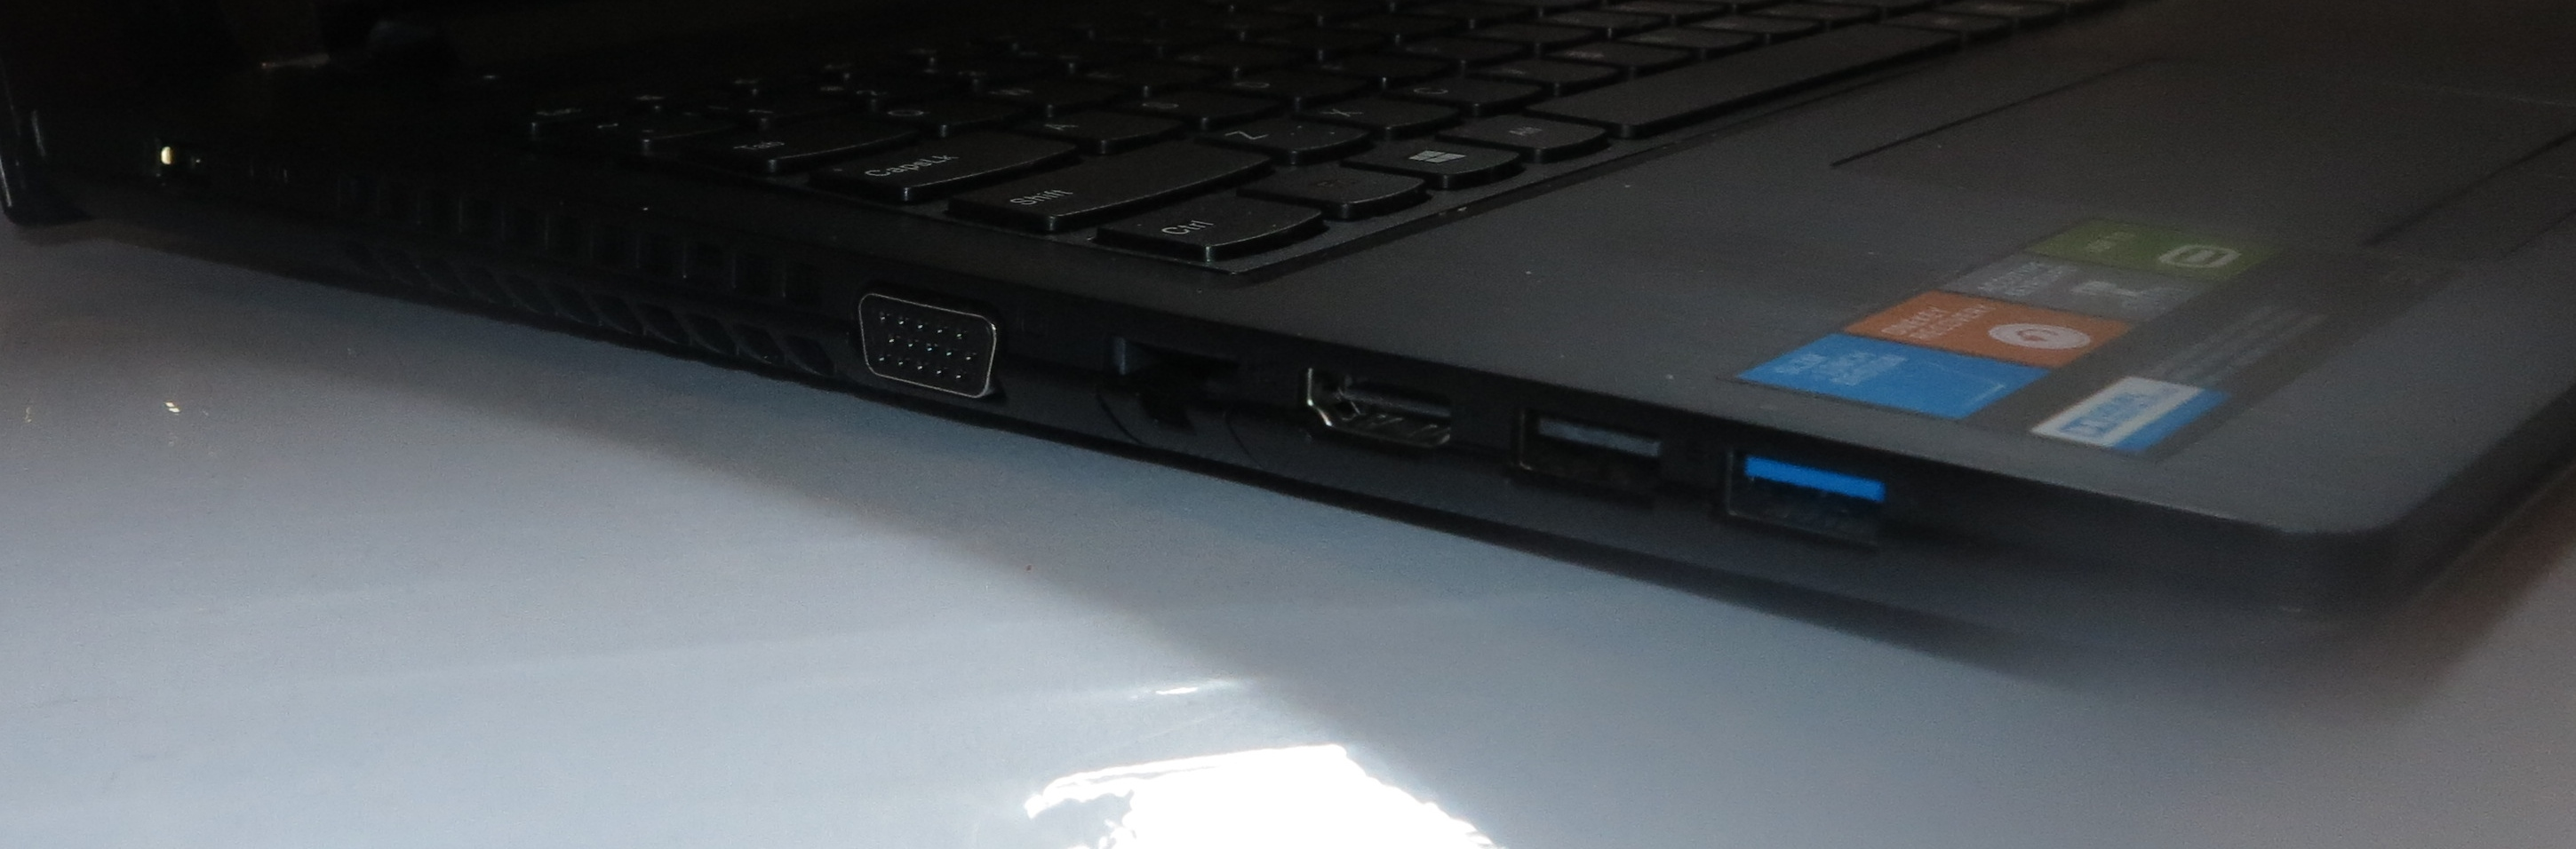 Lenovo Thinkpd G50 laptop - Left-hand-side view - VGA, Ethernet, HDMI, USB 3.0, USB 2.0